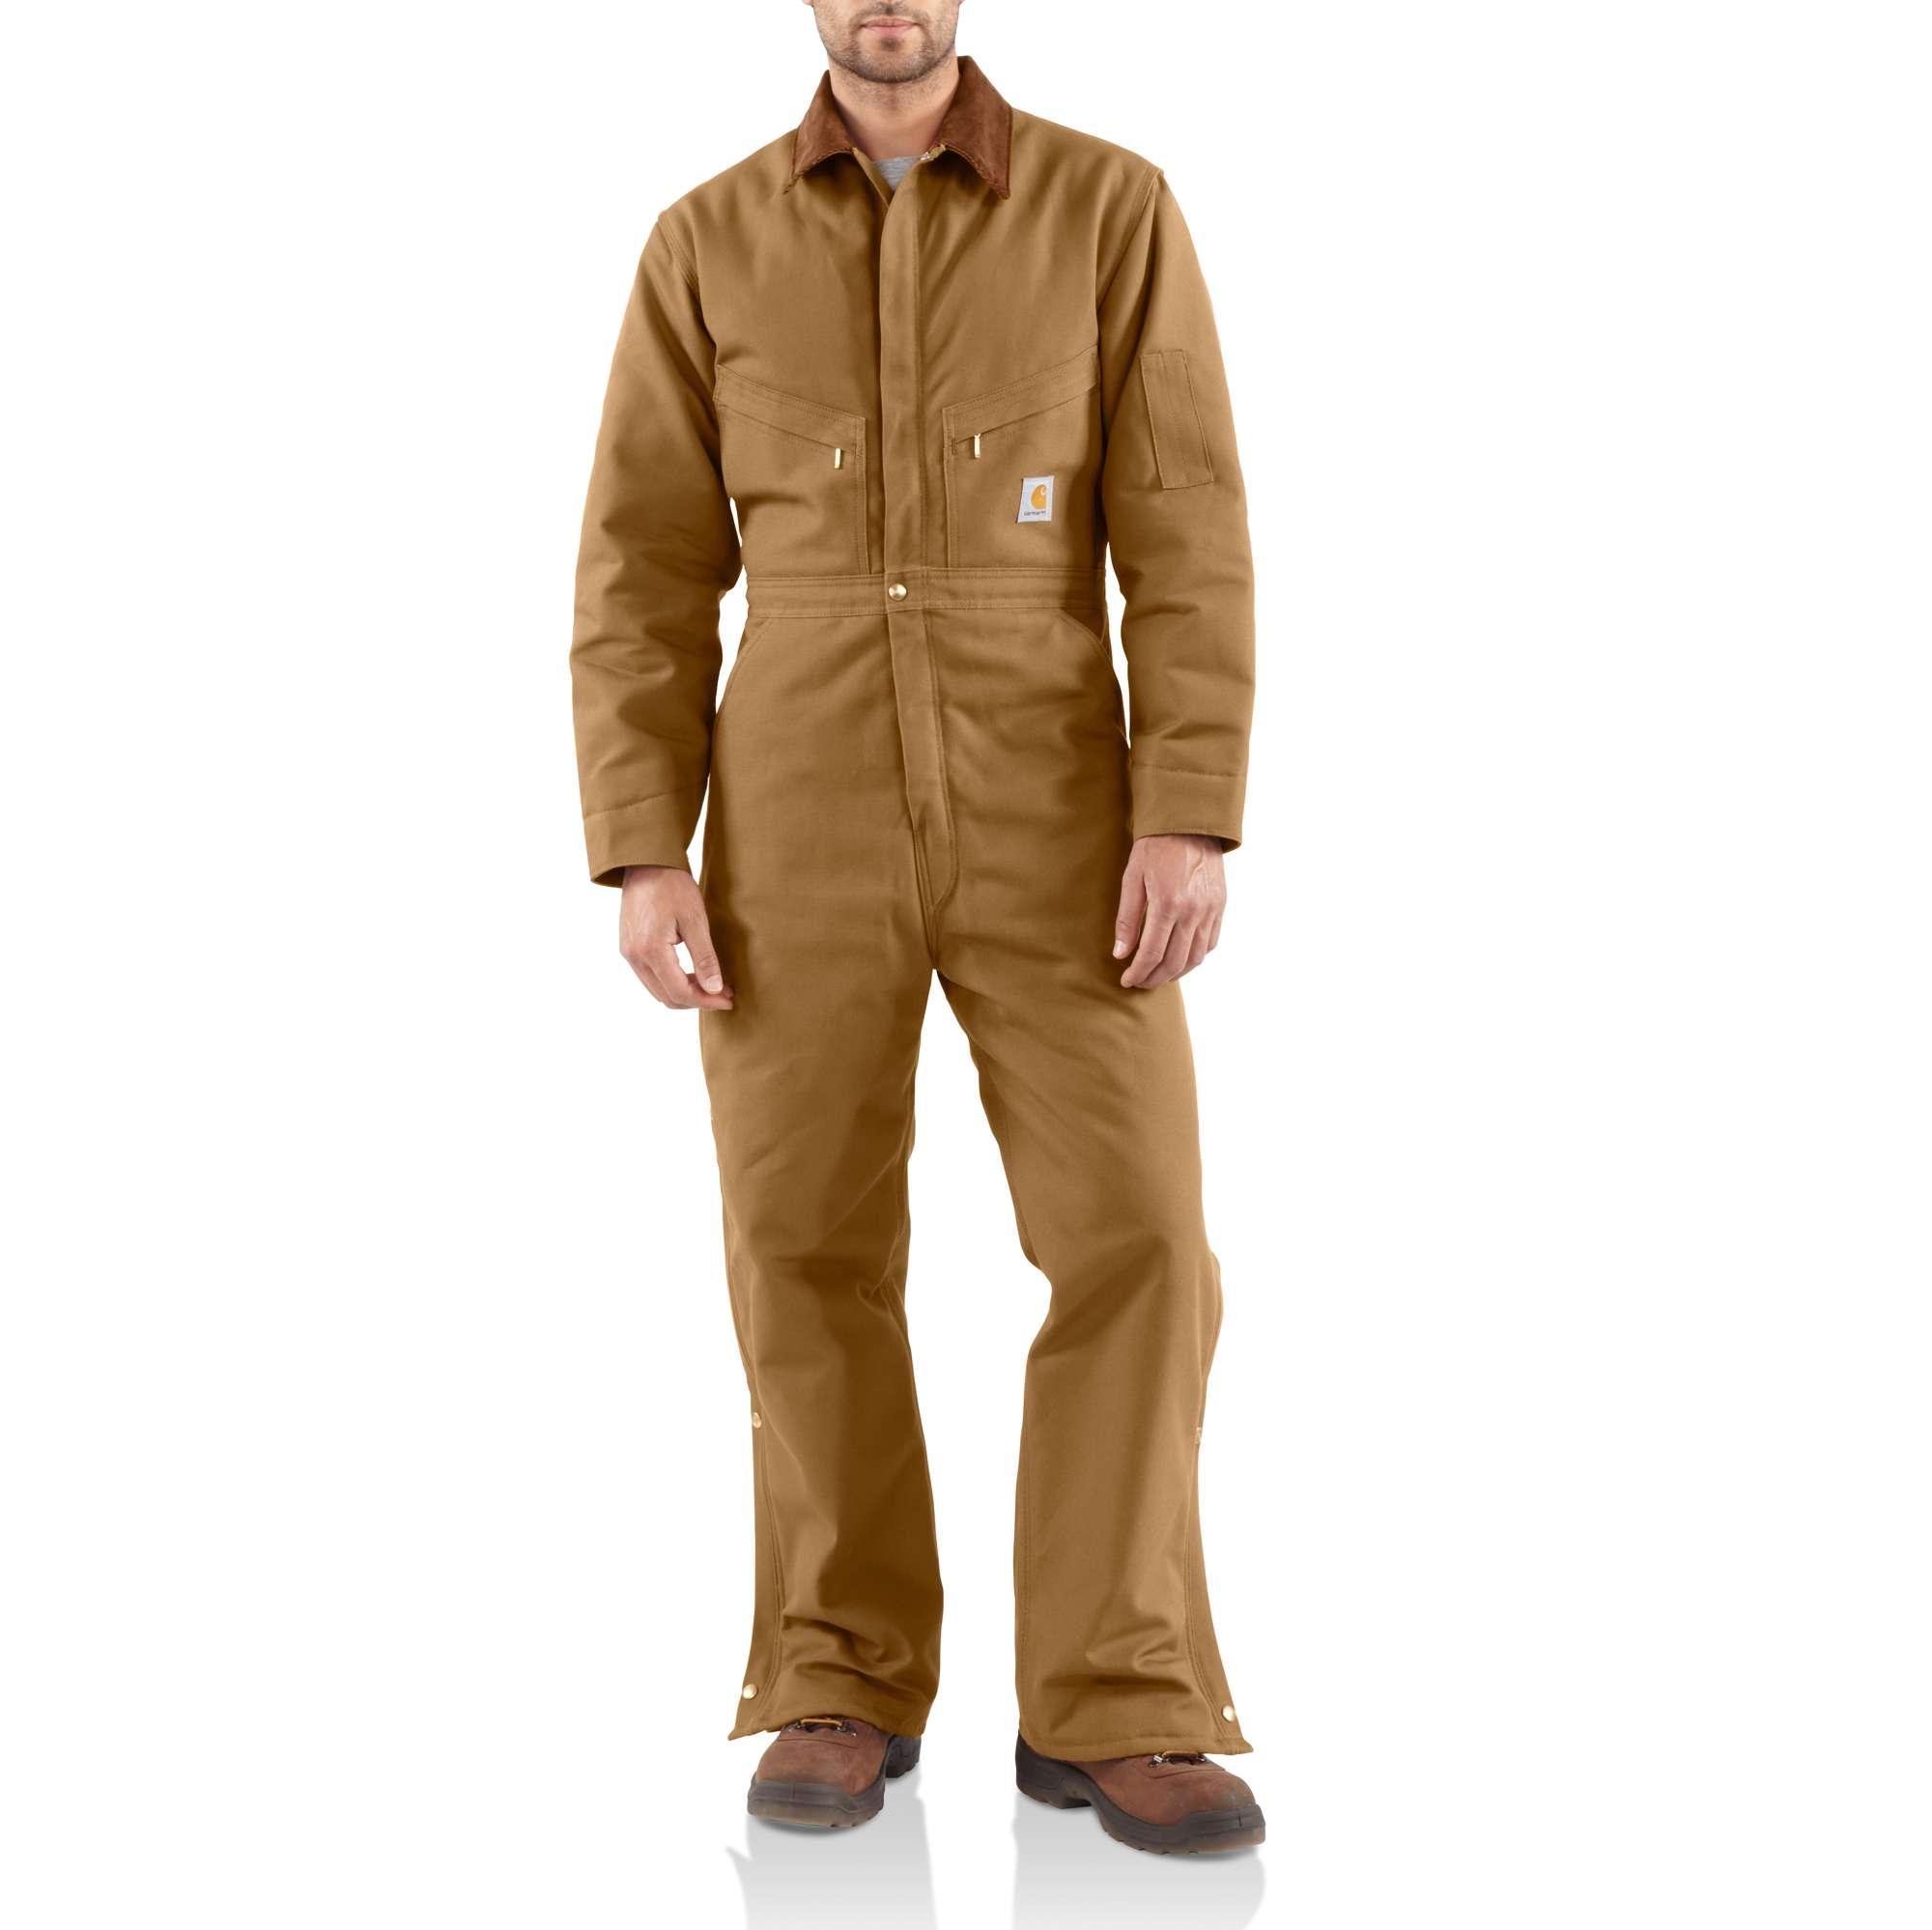 Carhartt Duck Coveralls / Quilt-lined